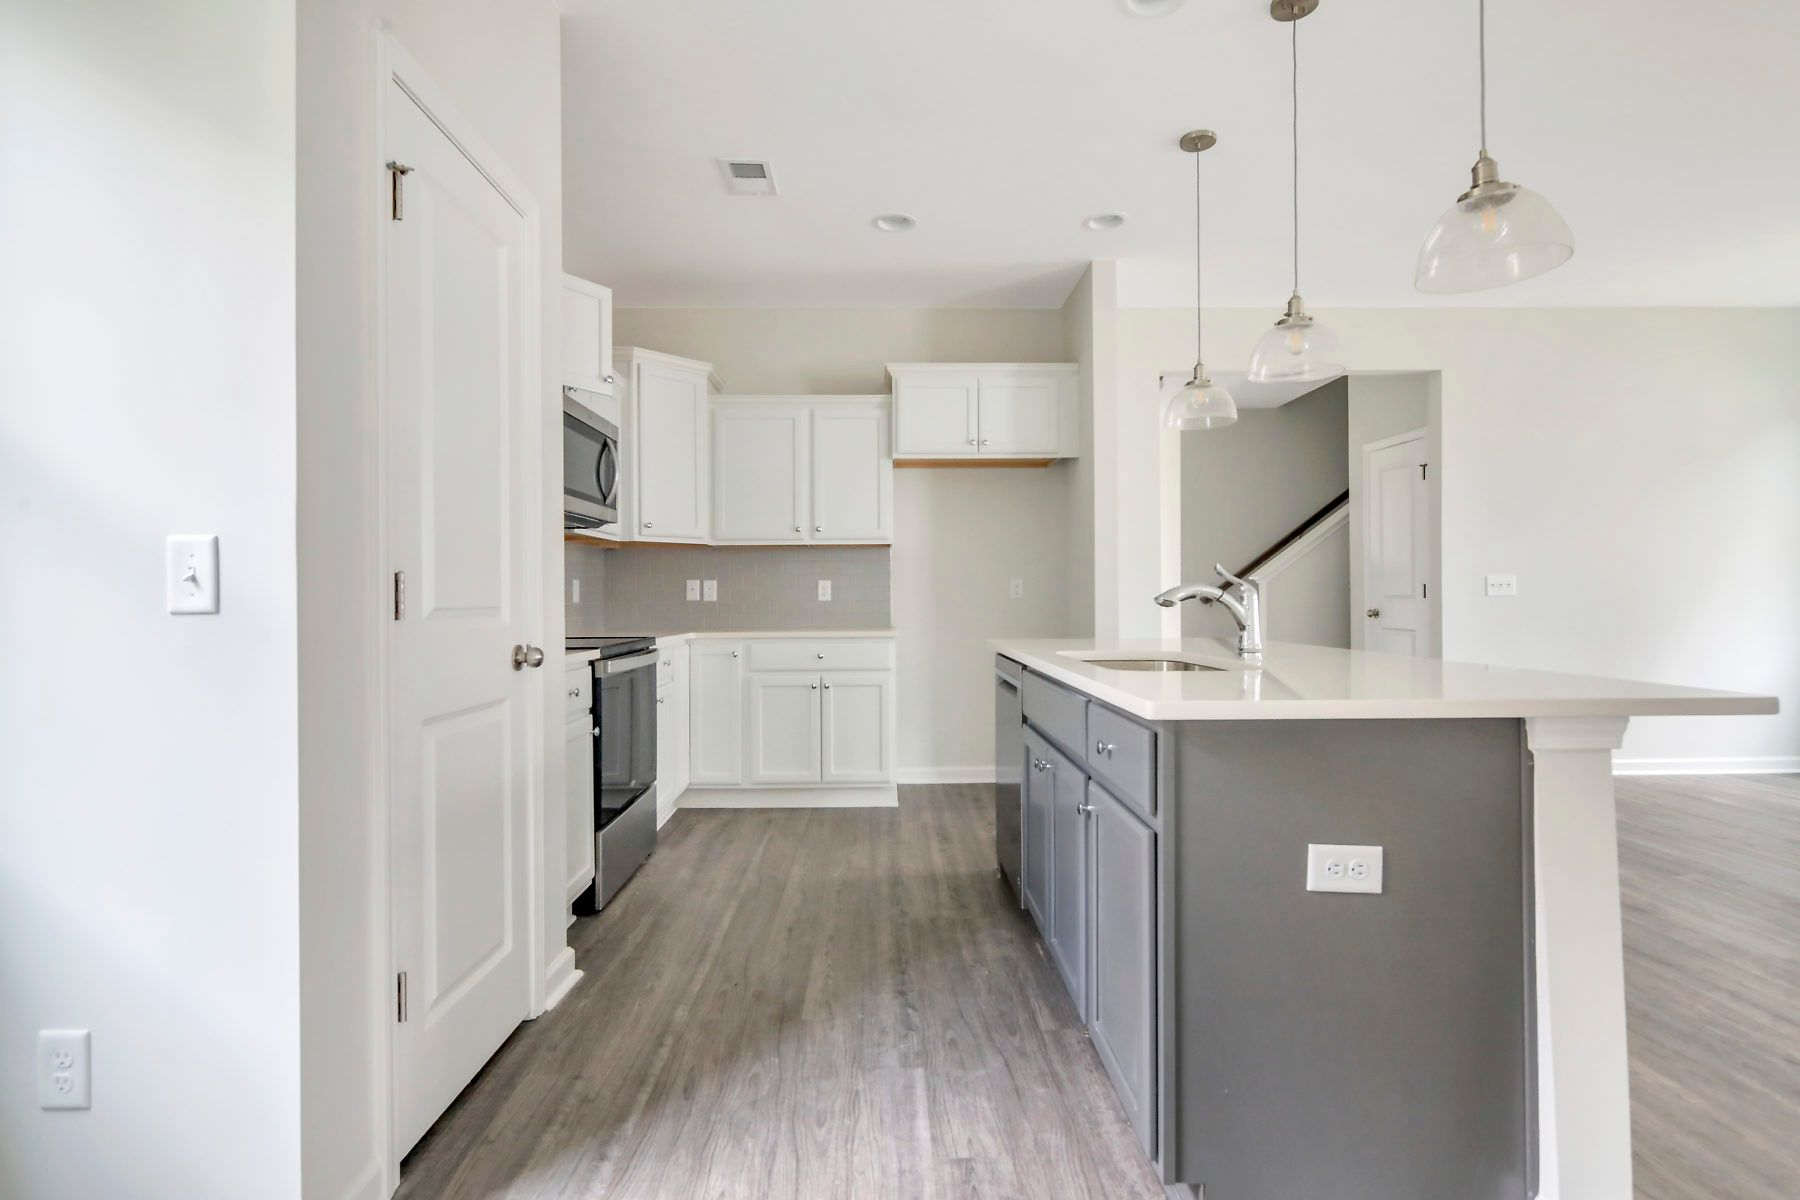 Kitchen featured in The Chippewah II By Village Park Homes in Hilton Head, SC